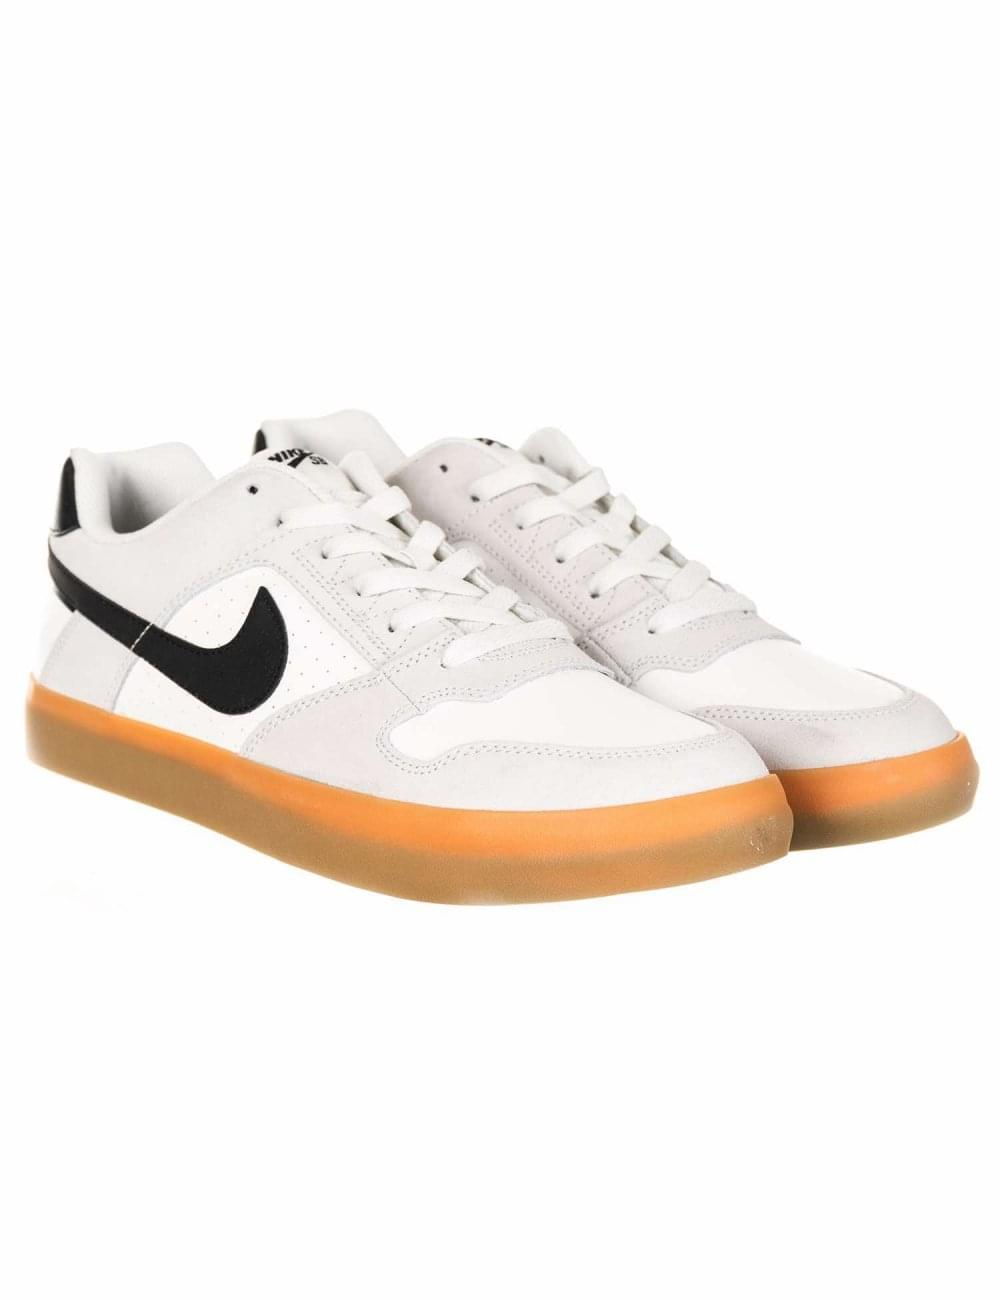 f202bac7967d Nike SB Delta Force Vulc Trainers - White Black Gum - Footwear from ...